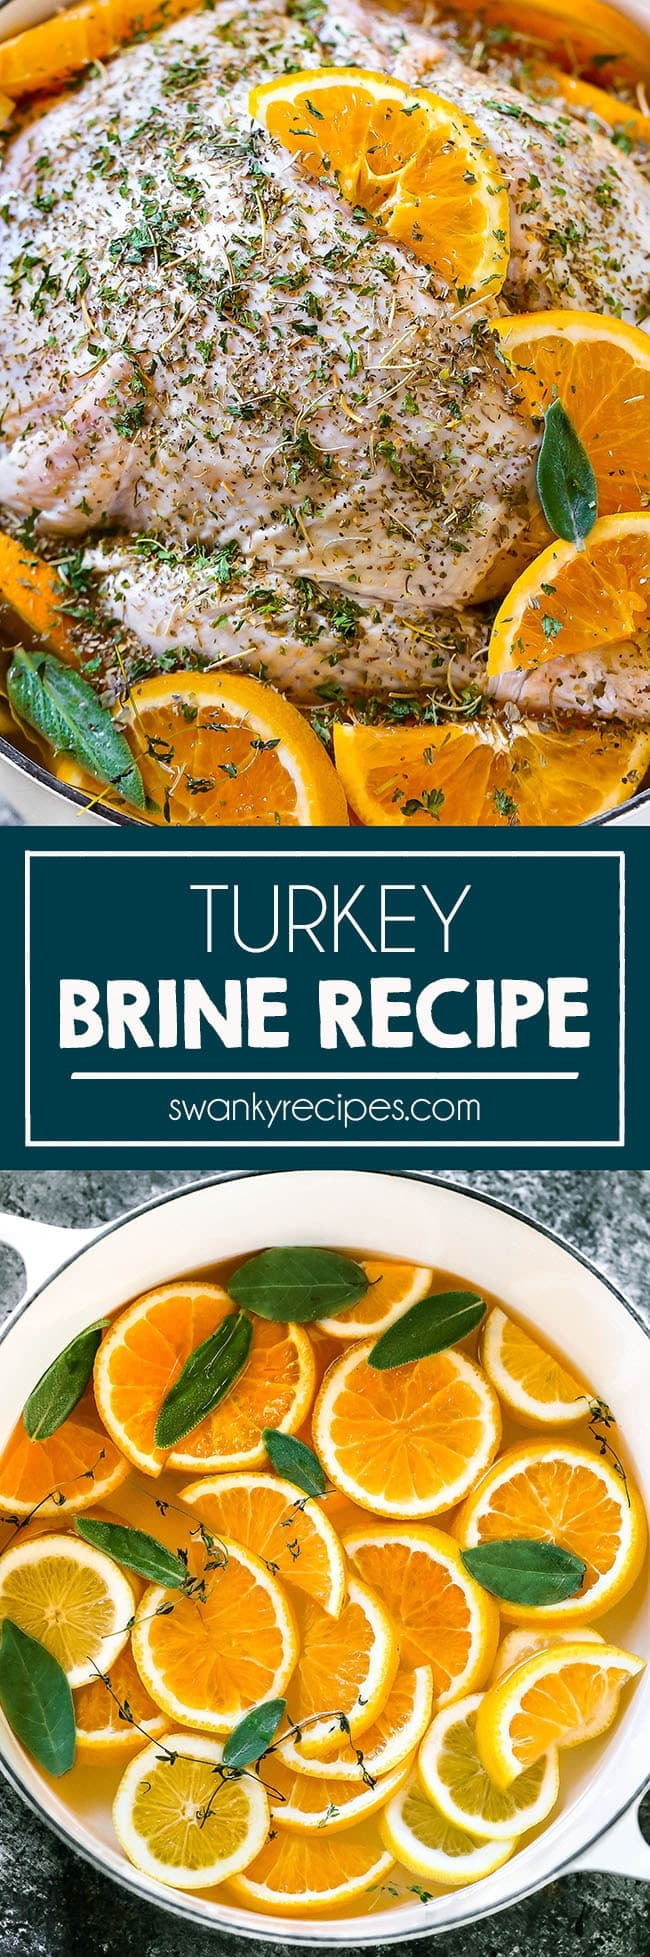 Easy Salt water brine recipe for turkey or poultry. This turkey brine recipe creates juicy, moist,flavorful turkey or chicken. Flavor with oranges, lemons, poultry seasoning, fresh herbs or fruit juice.